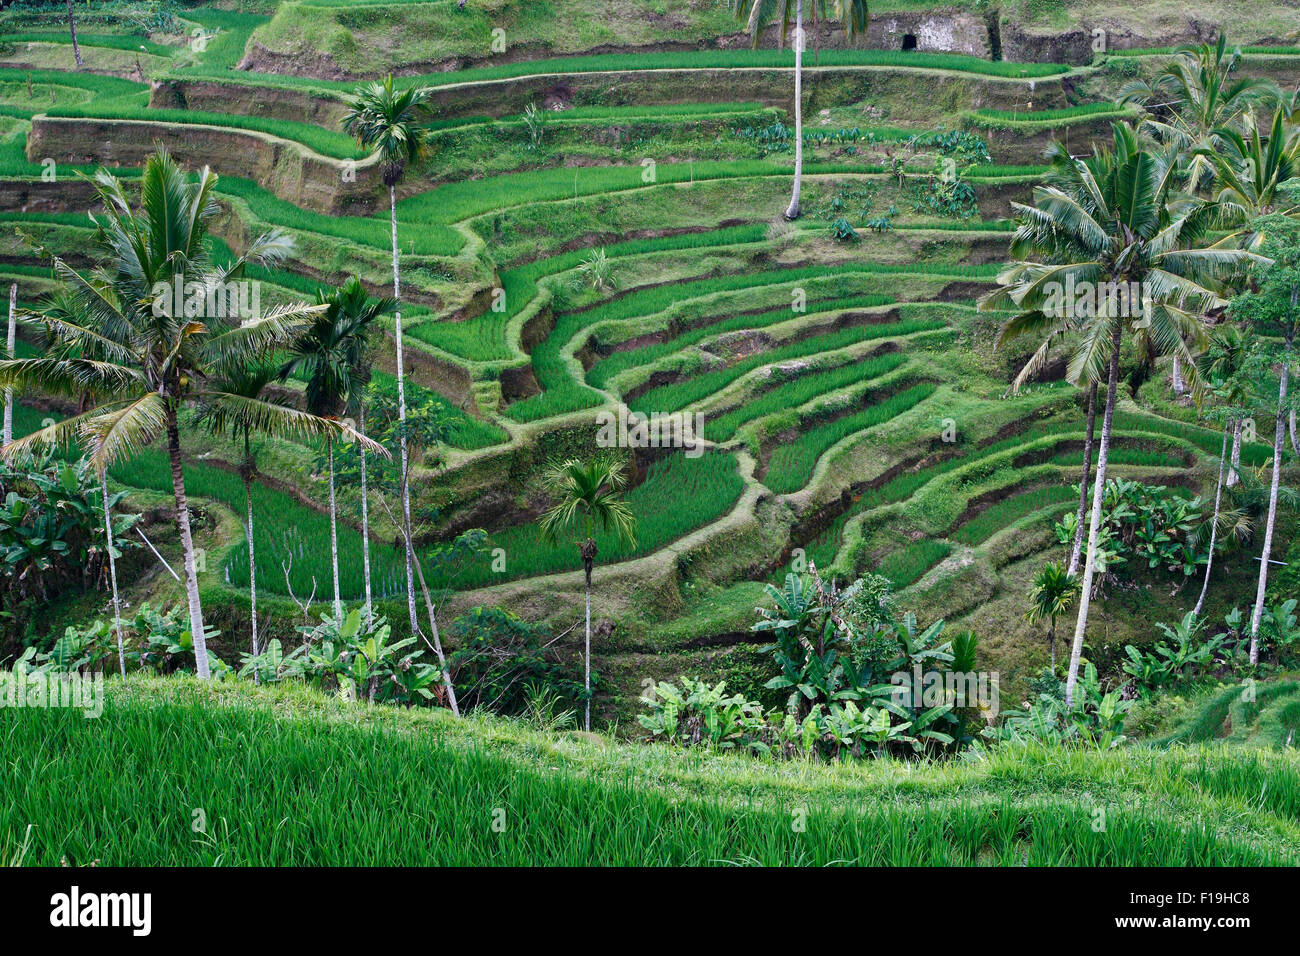 px41713-D. rice terraces and palm trees, Bali. Indonesia. Photo Copyright © Brandon Cole. All rights reserved - Stock Image